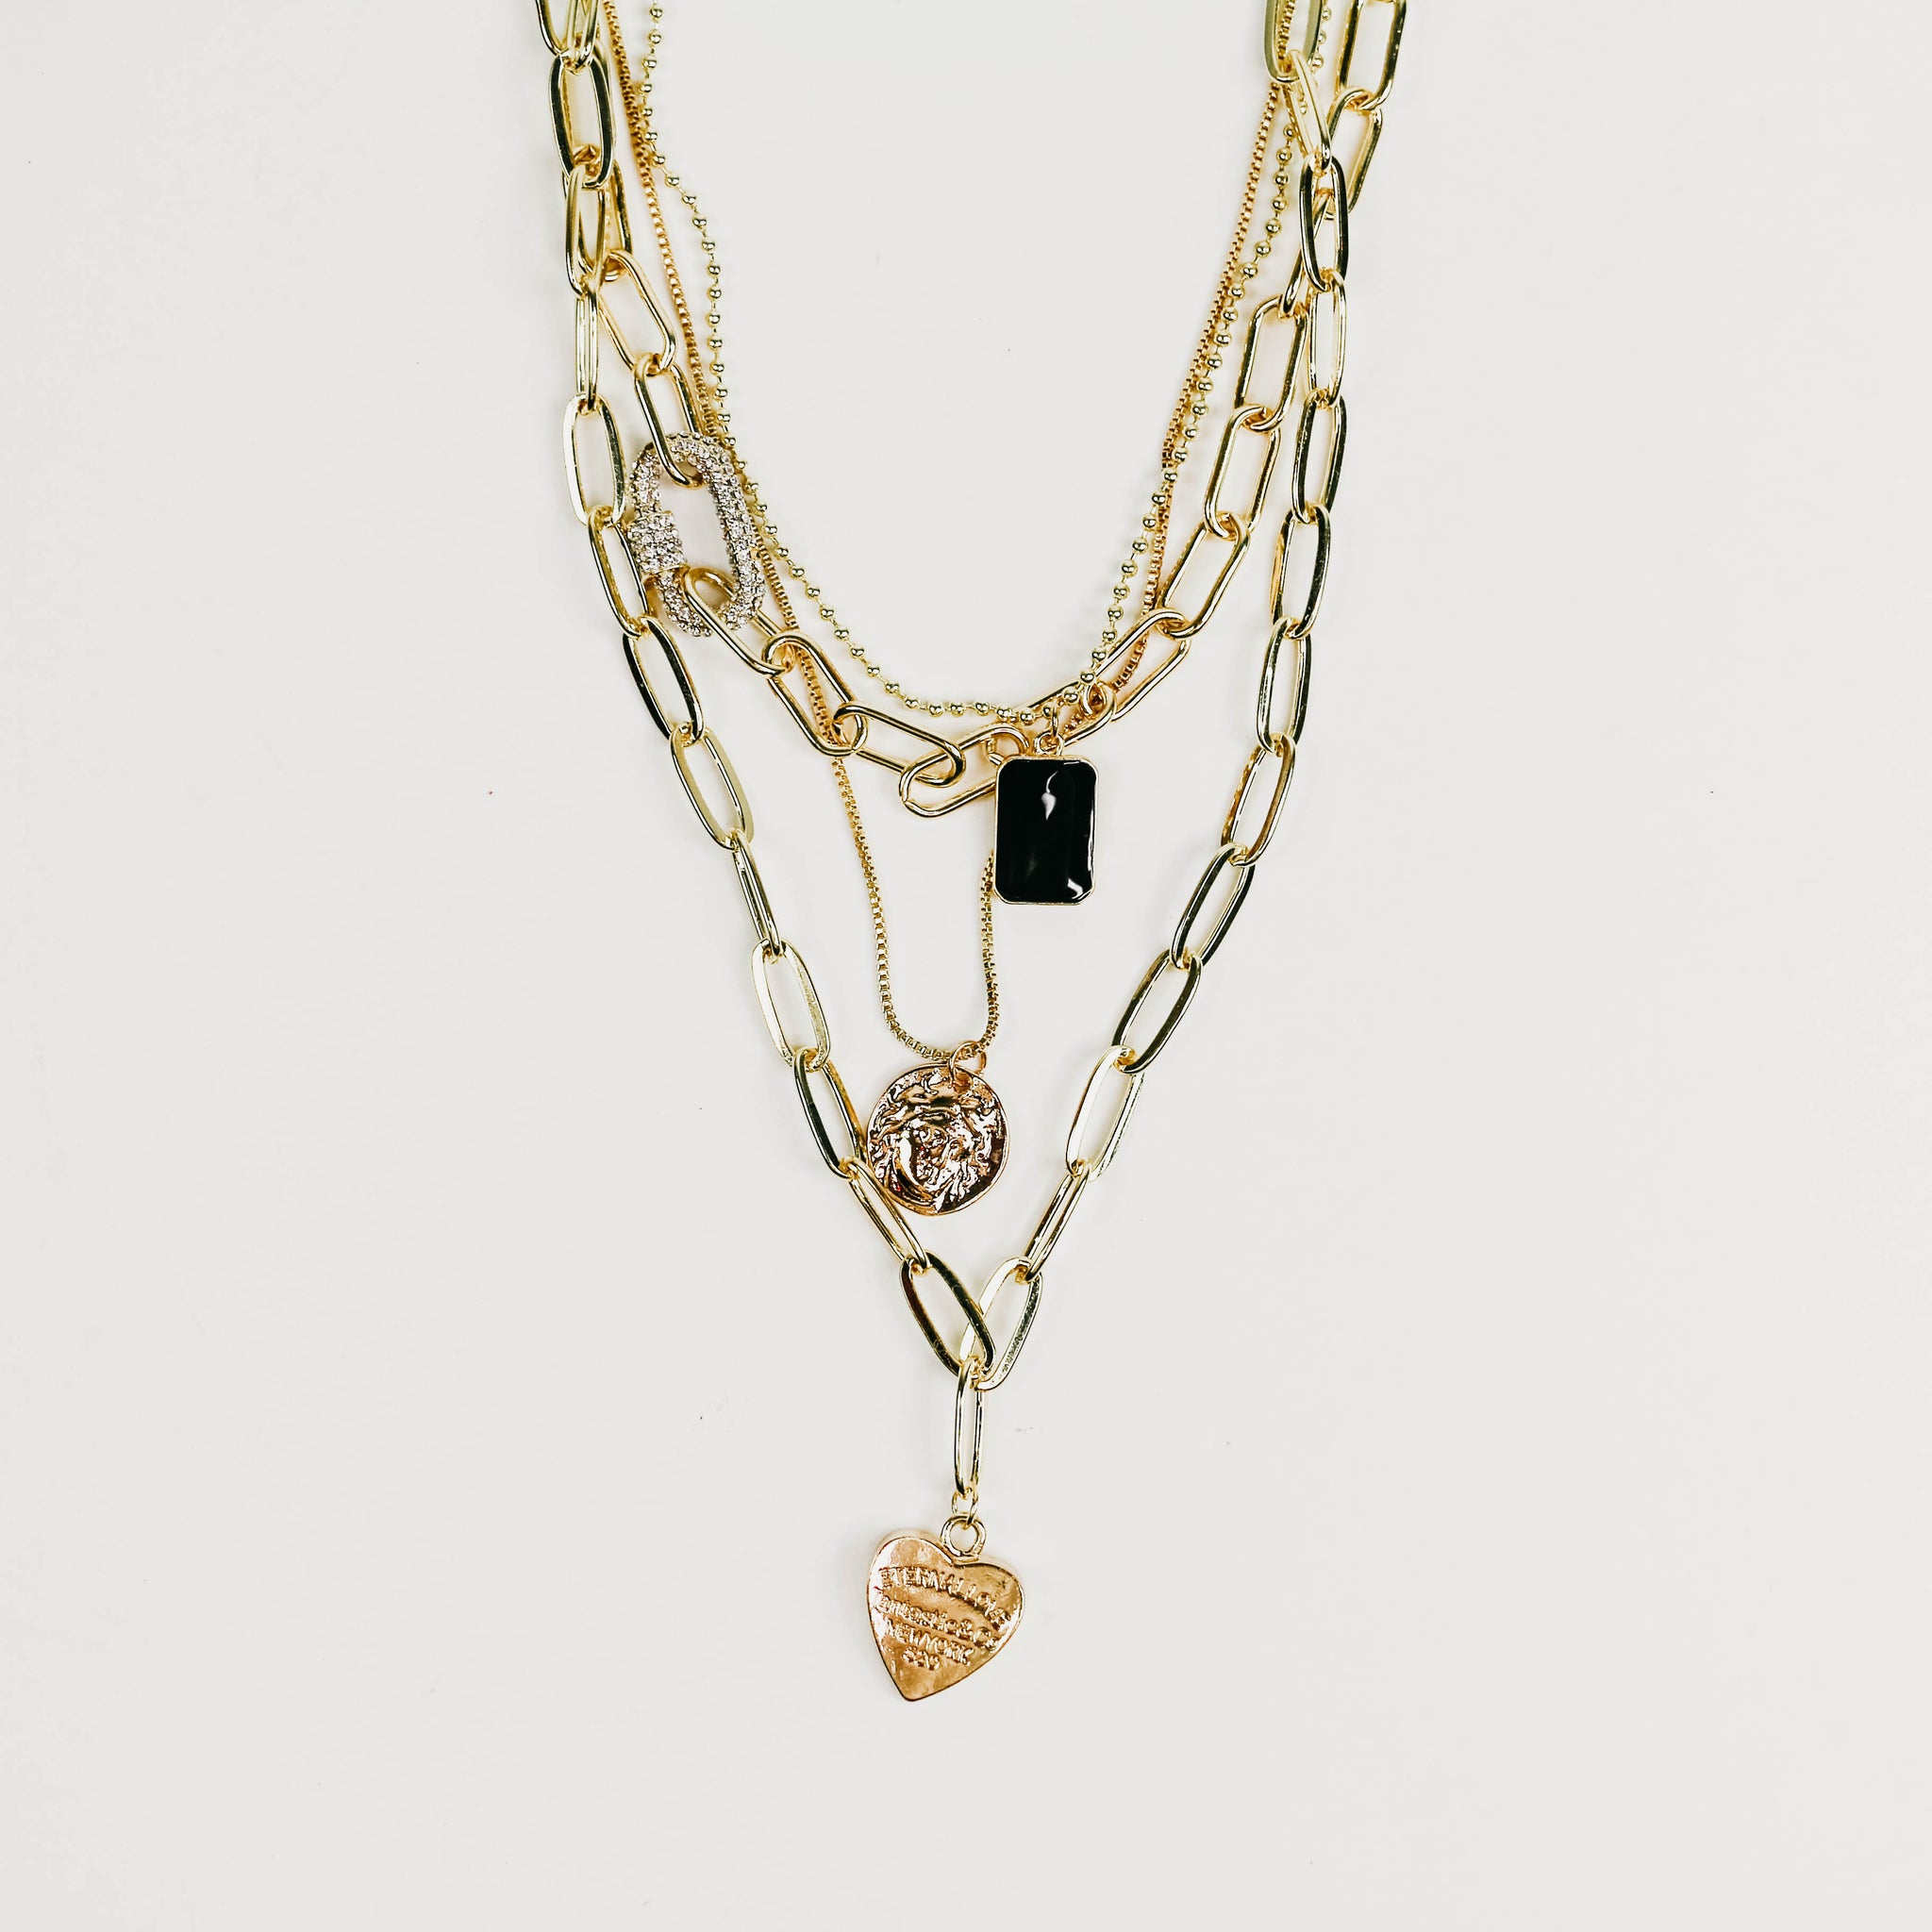 Gold Layered Trinkets Necklace